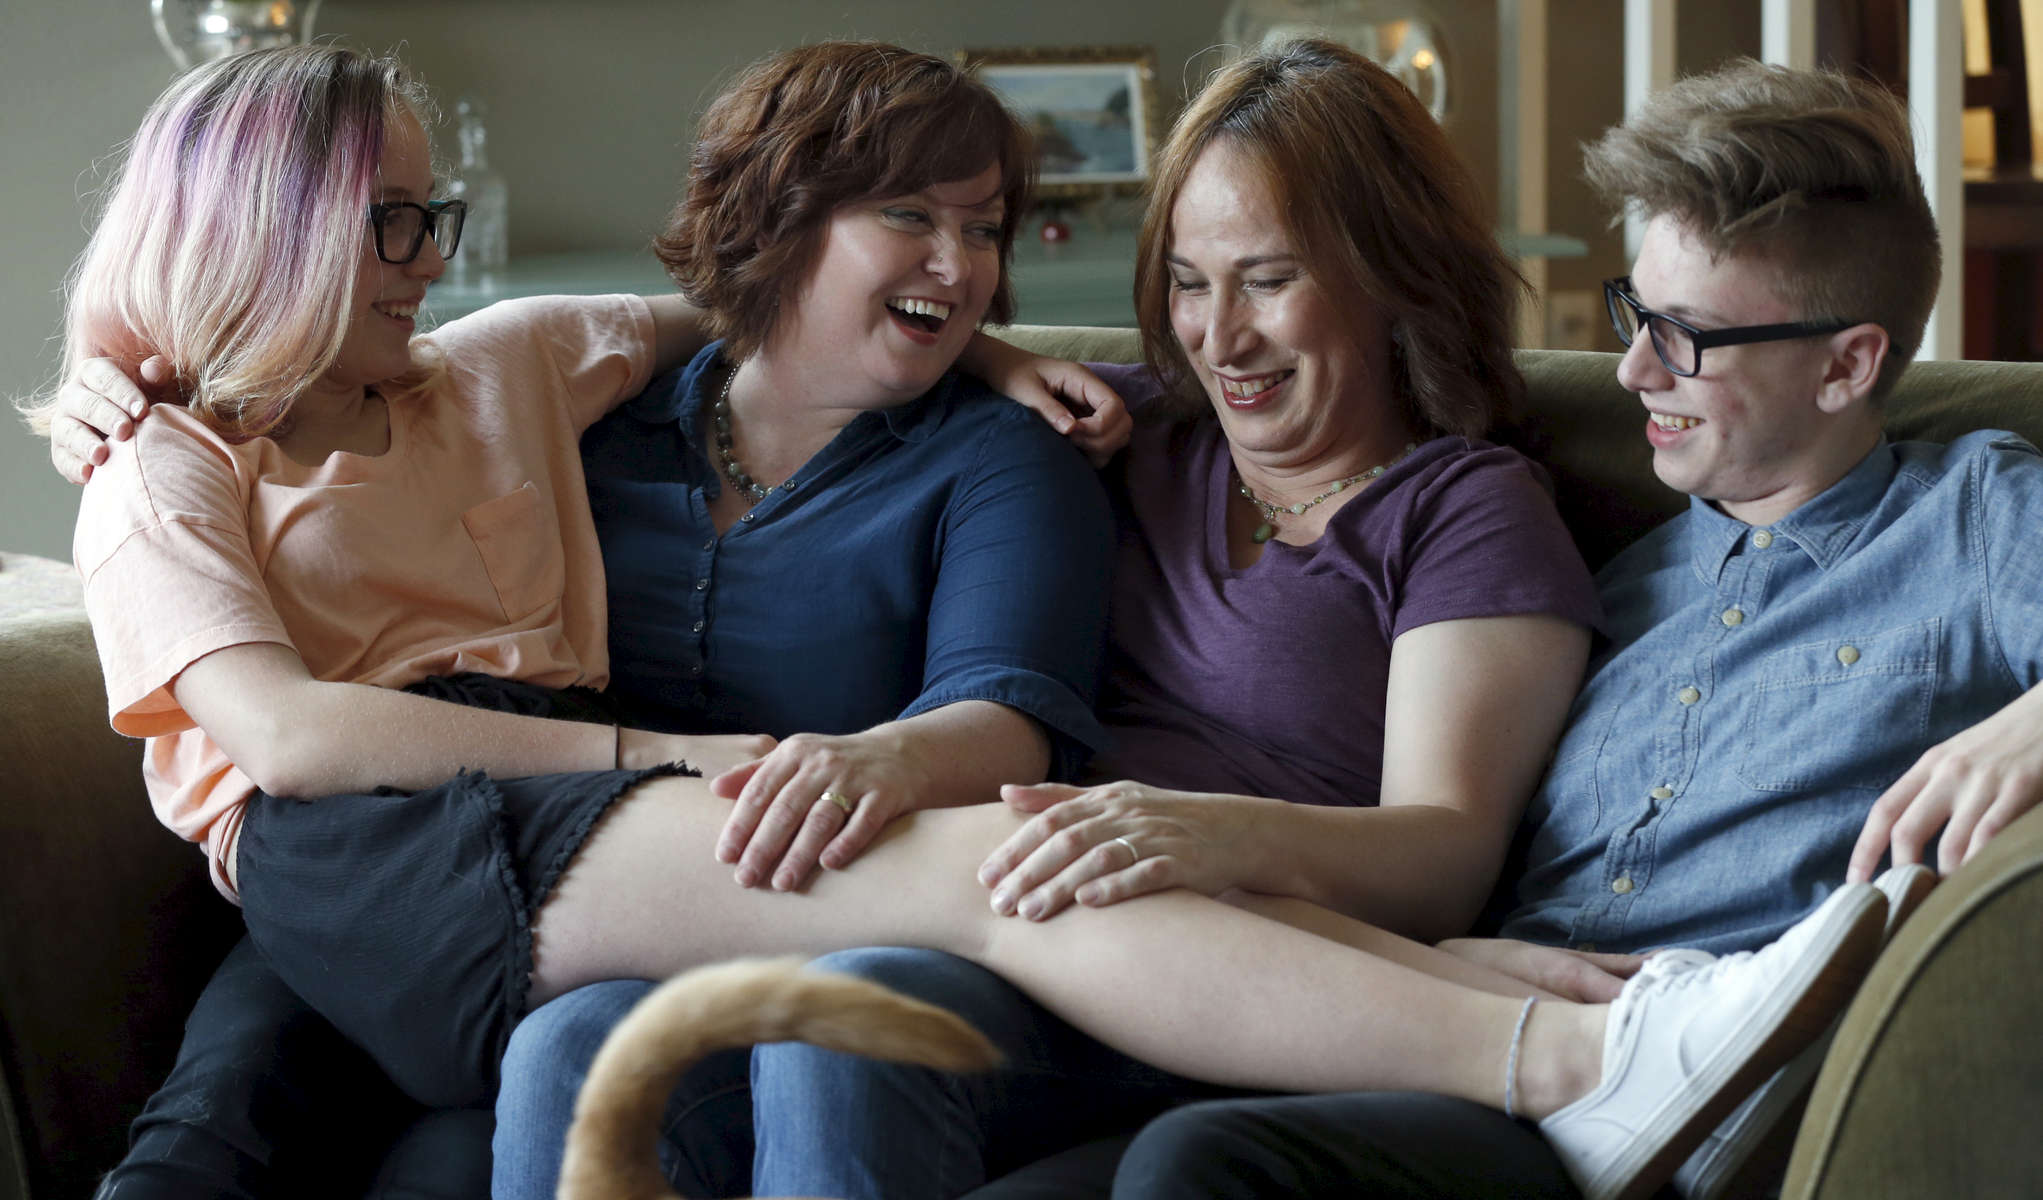 The Kachirisky family (left to right) Avery, 13, Kris, Aly and Owen, 16, pile together on a couch, April 21, 2016. Aly and Kris Kachirisky just celebrated their 19th year of marriage. The West Linn couple redefined their relationship following Aly's announcement that she was transgender and eventual transition.Kristyna Wentz-Graff/Staff